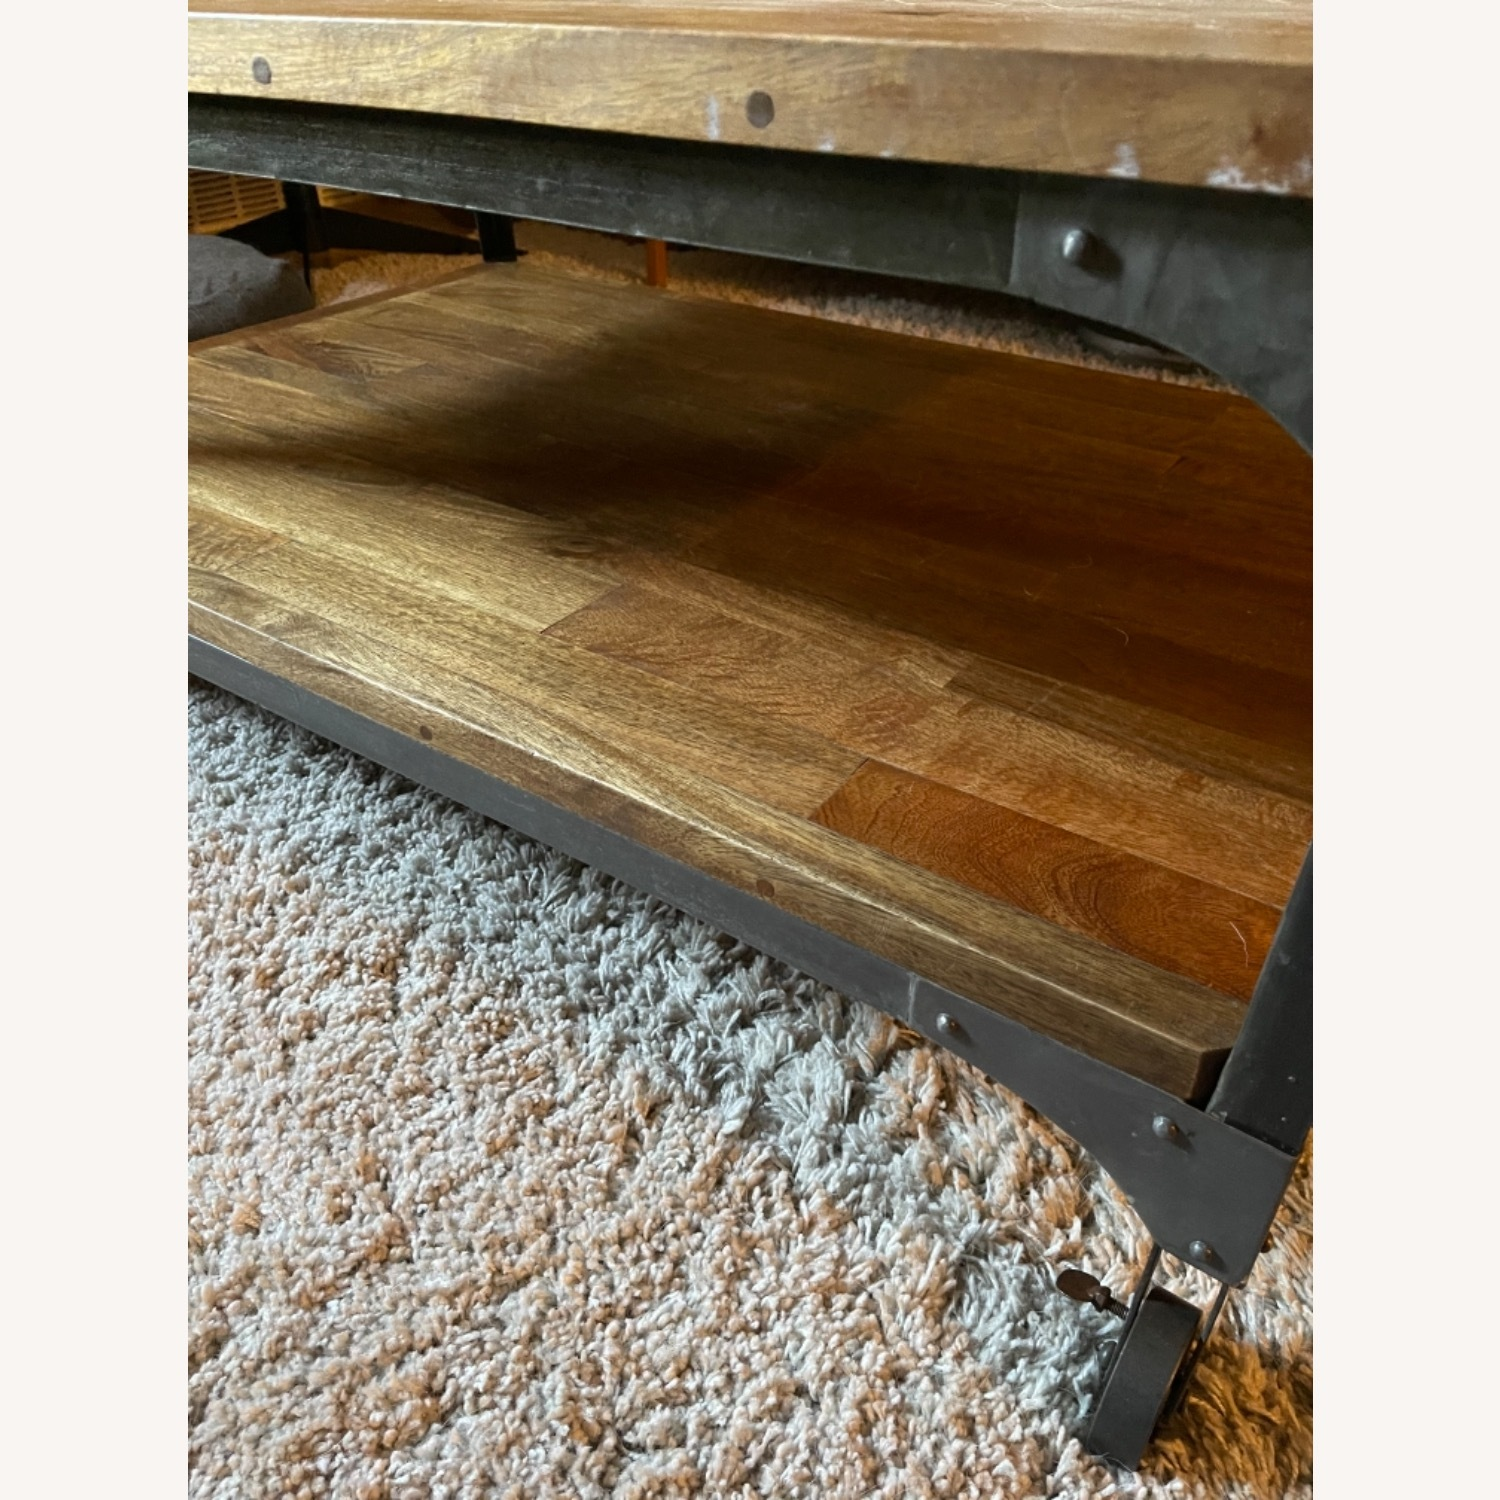 World Market Aiden Coffee Table - Industrial look - image-6